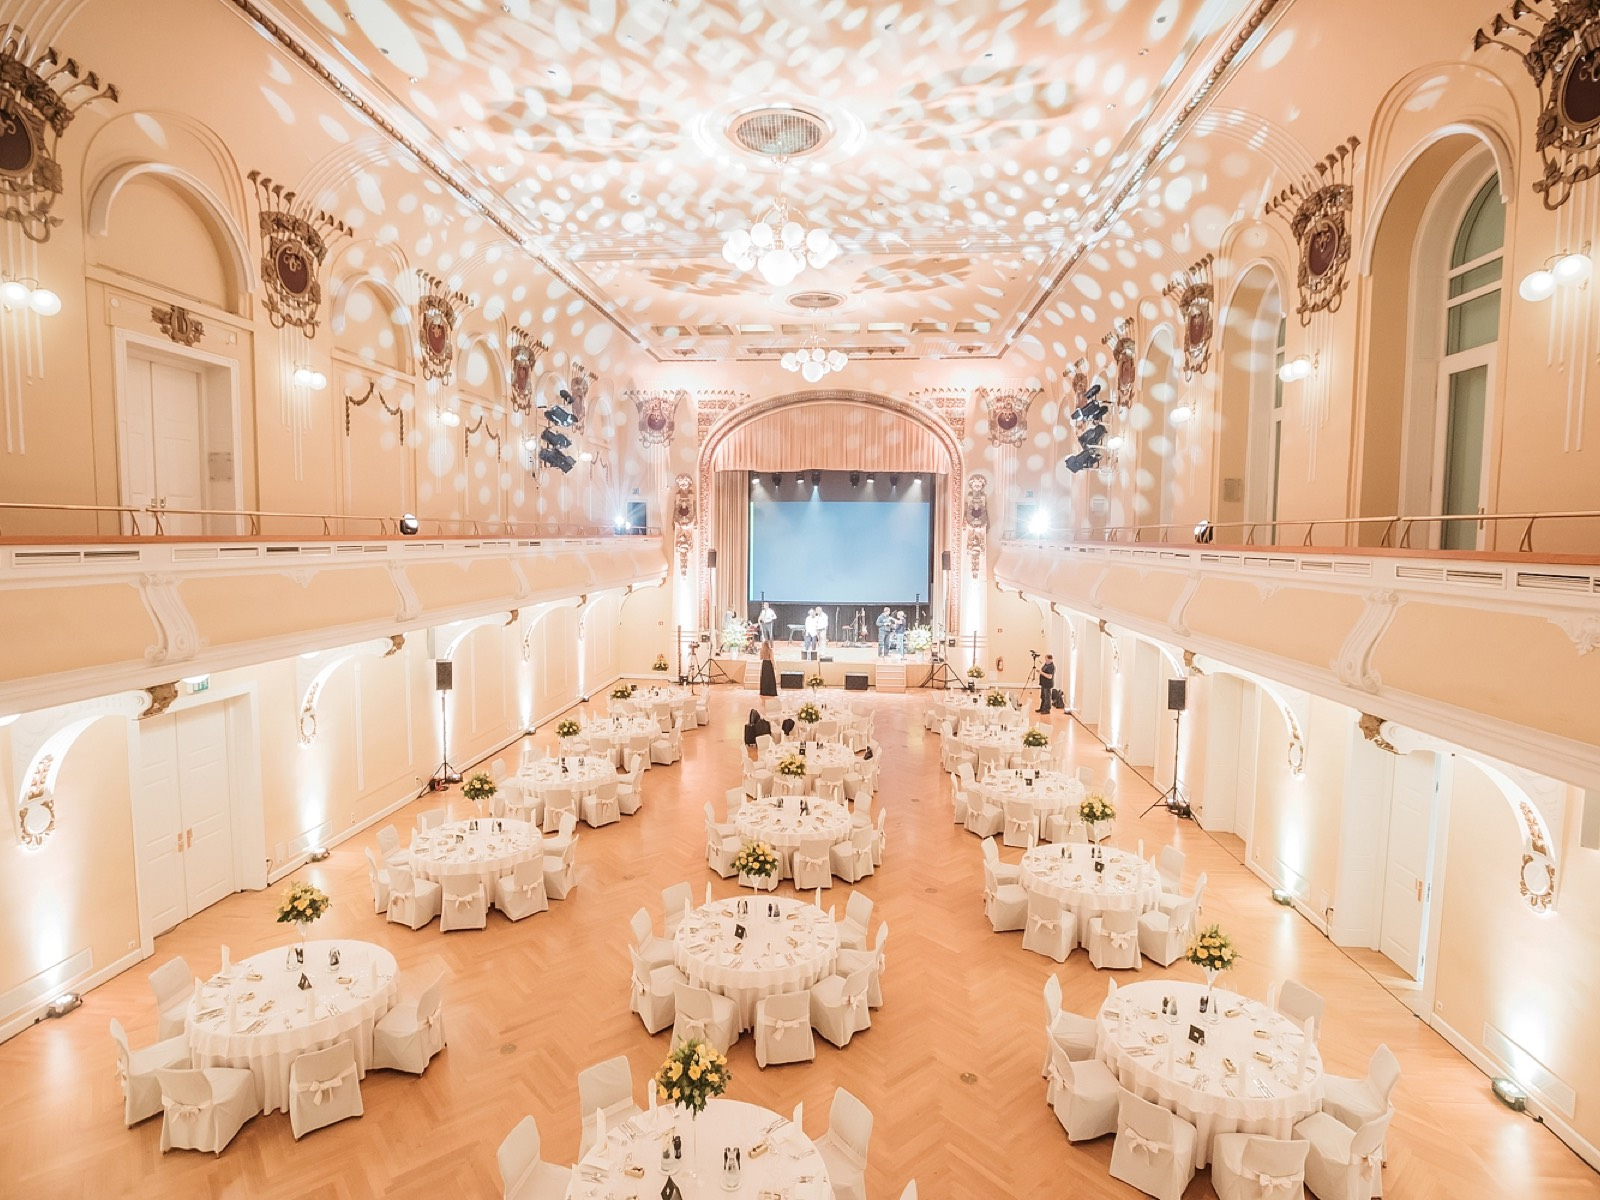 Events spaces at Grand Hotel Union in Ljubljana